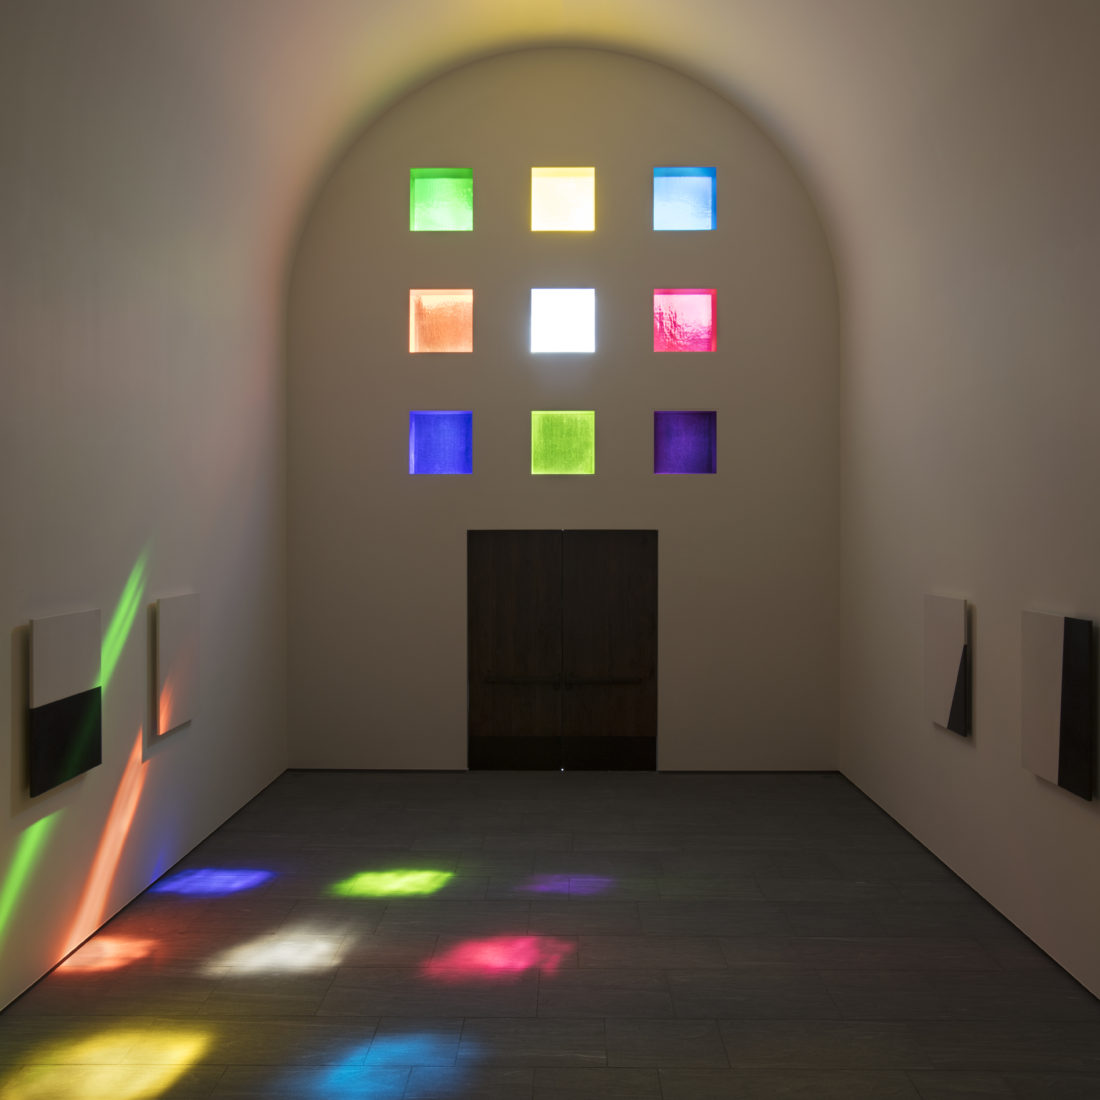 The South-facing view of Ellsworth Kelly's Austin